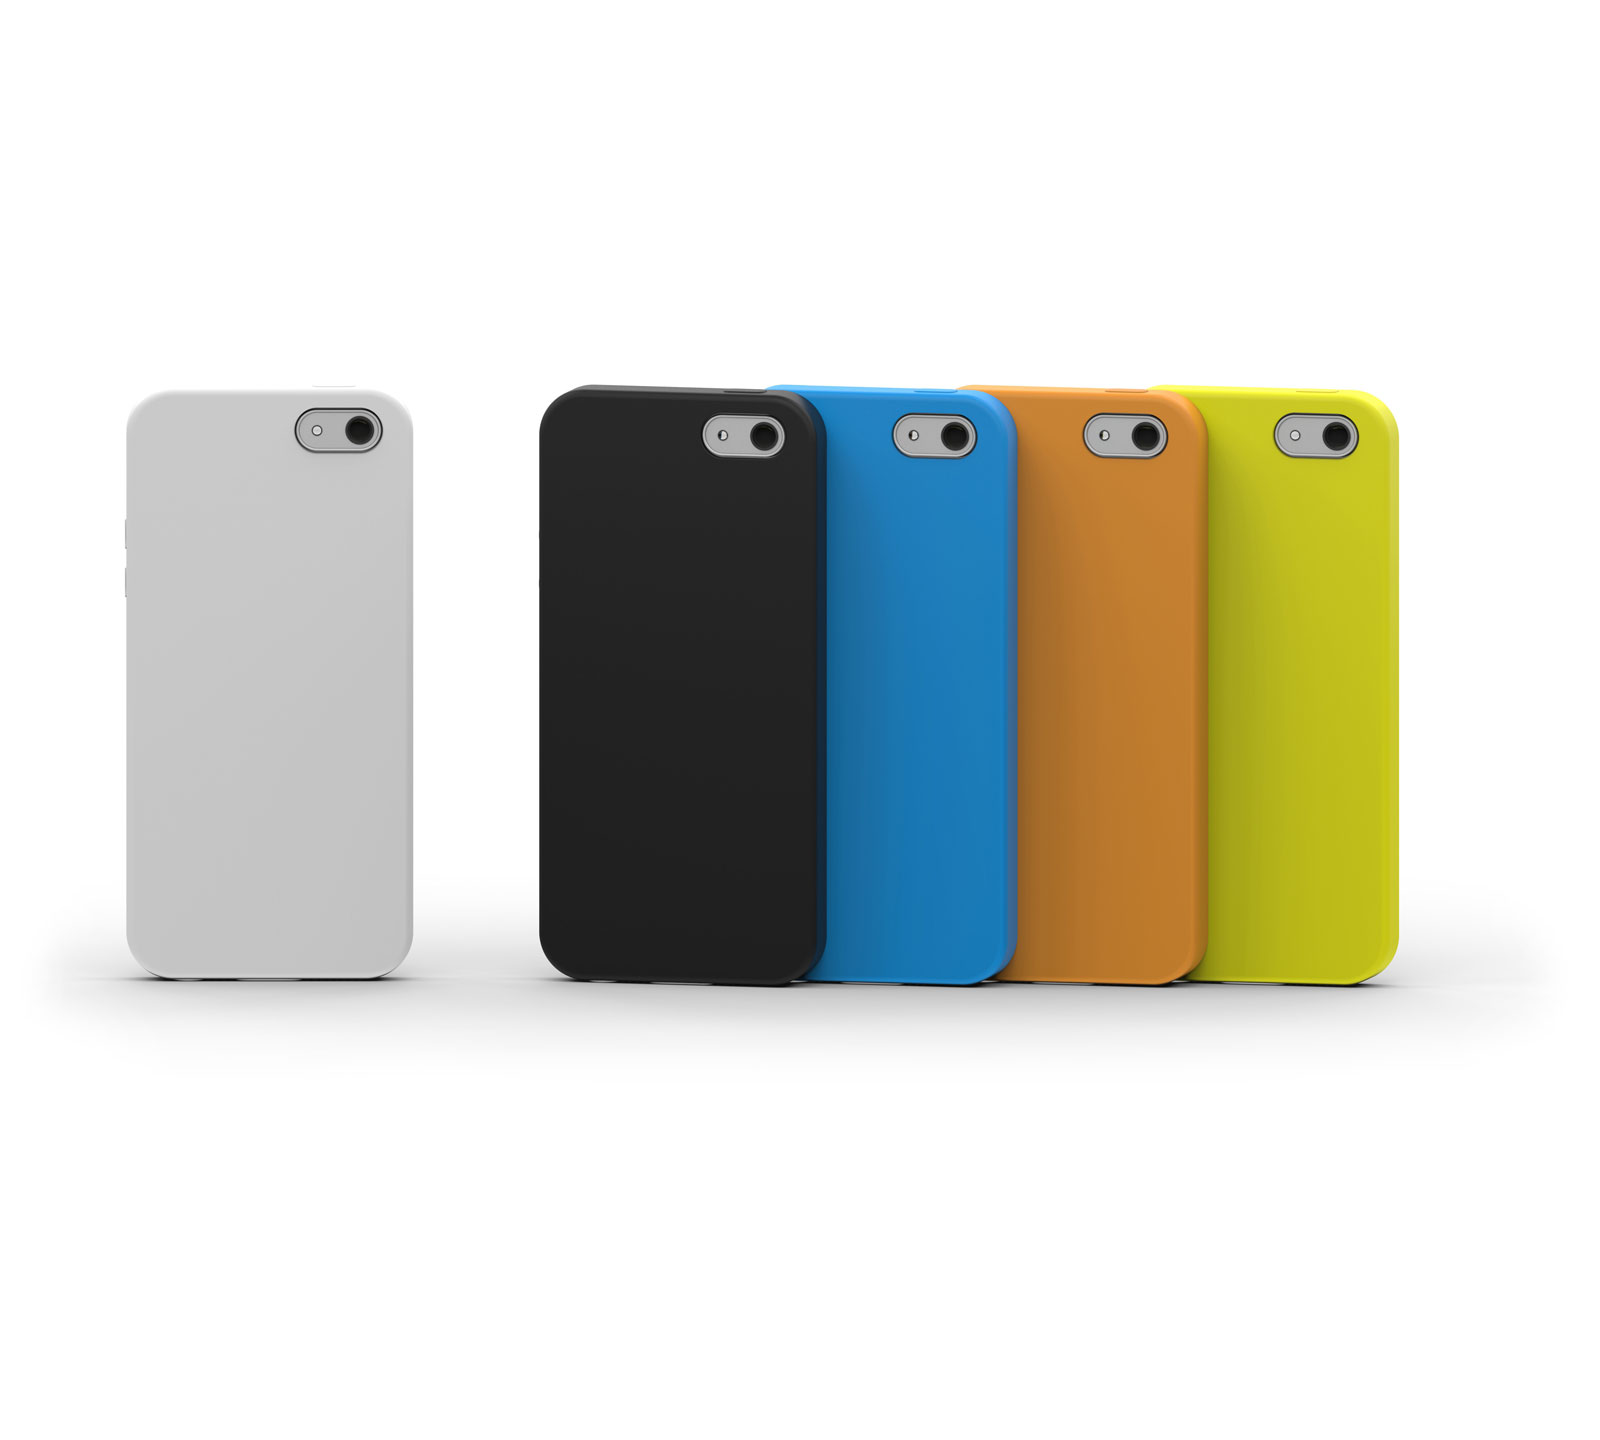 image of colorful phone cases